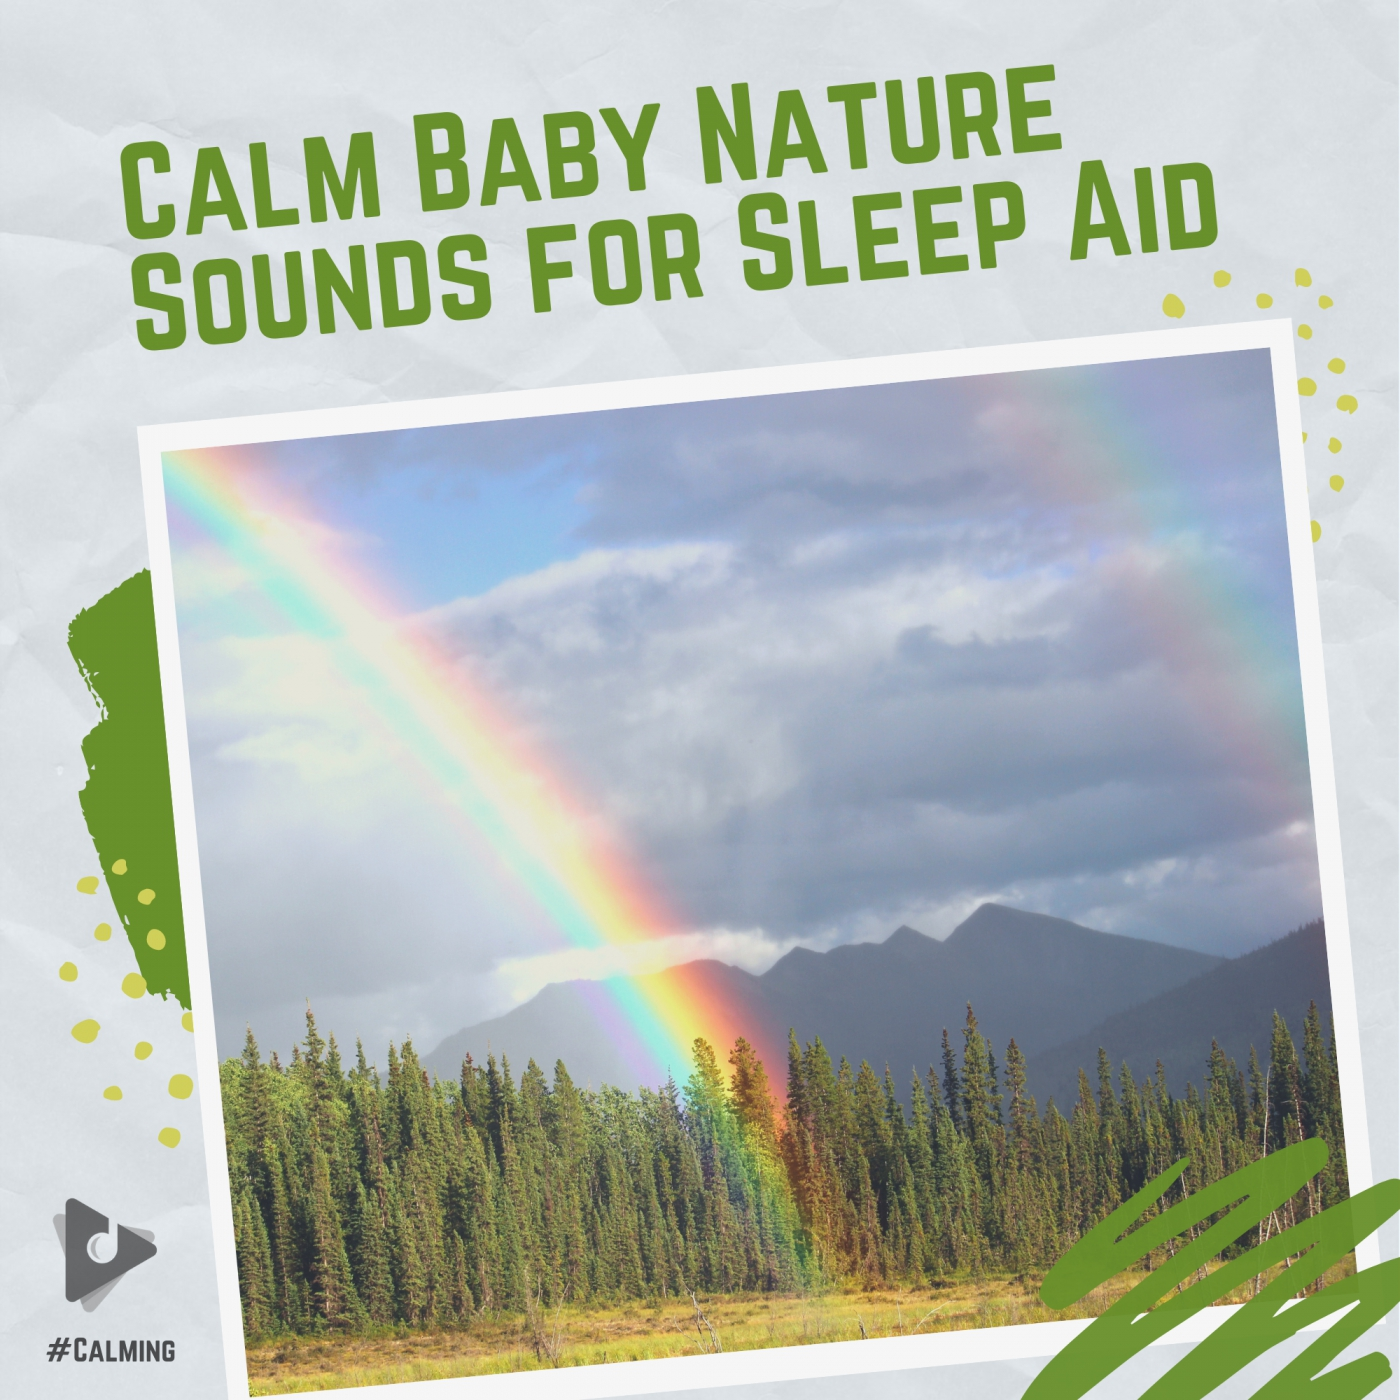 Calm Baby Nature Sounds for Sleep Aid